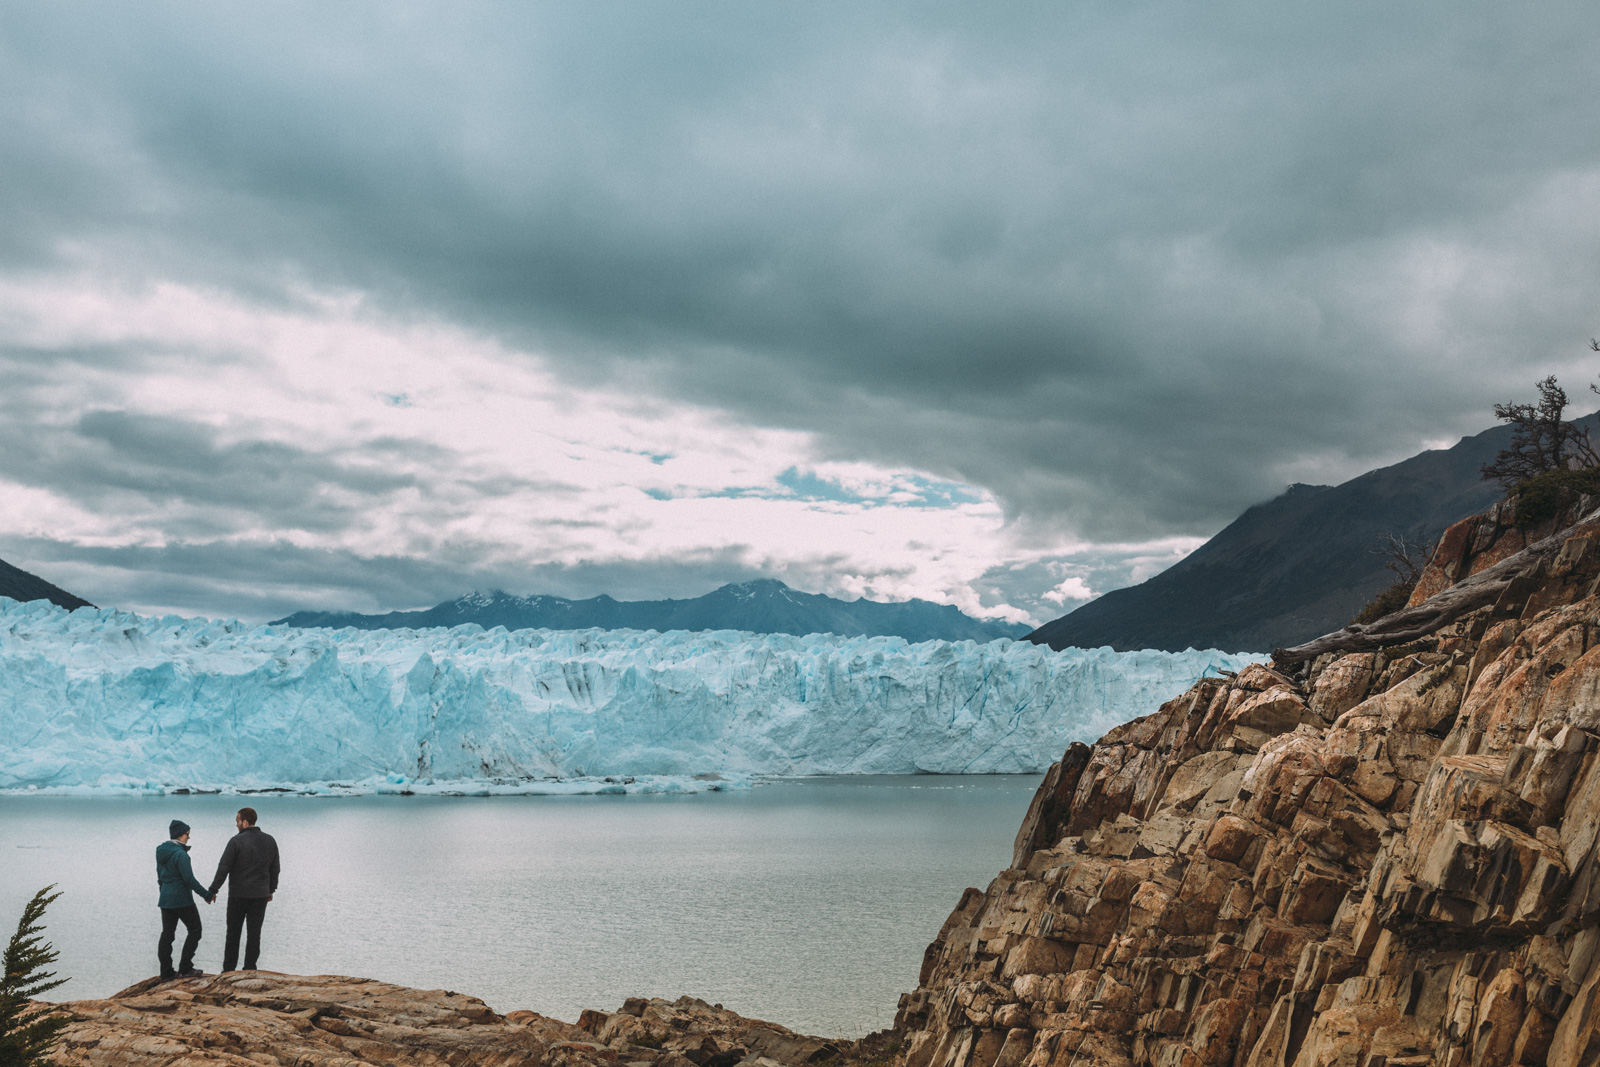 Patagonia-engagement-photography-in-El-Chalten-Argentina-by-lifestyle-photographer-Sam-Wong-of-Artanis-Collective_120.JPG